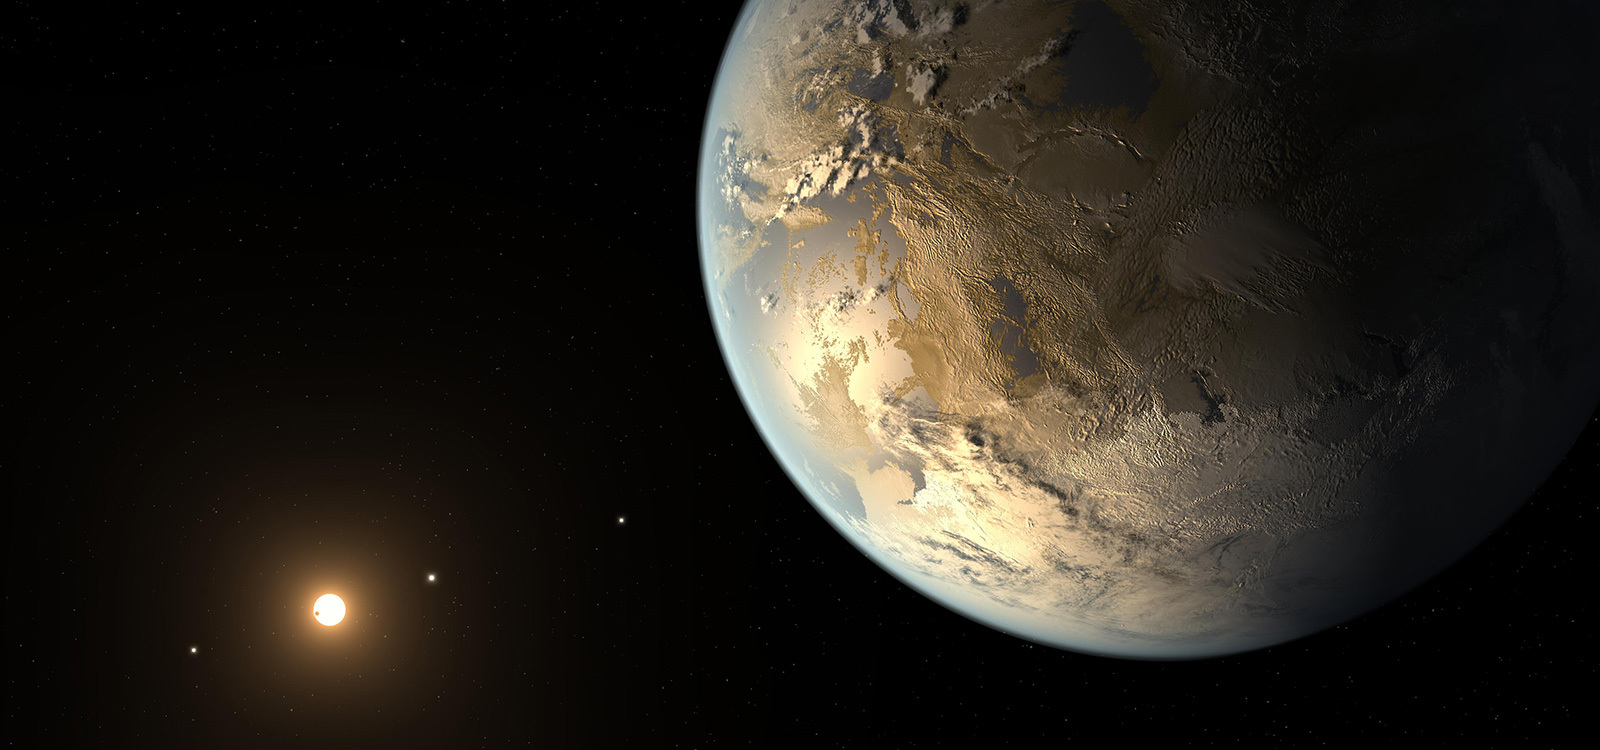 Warm welcome: finding habitable planets